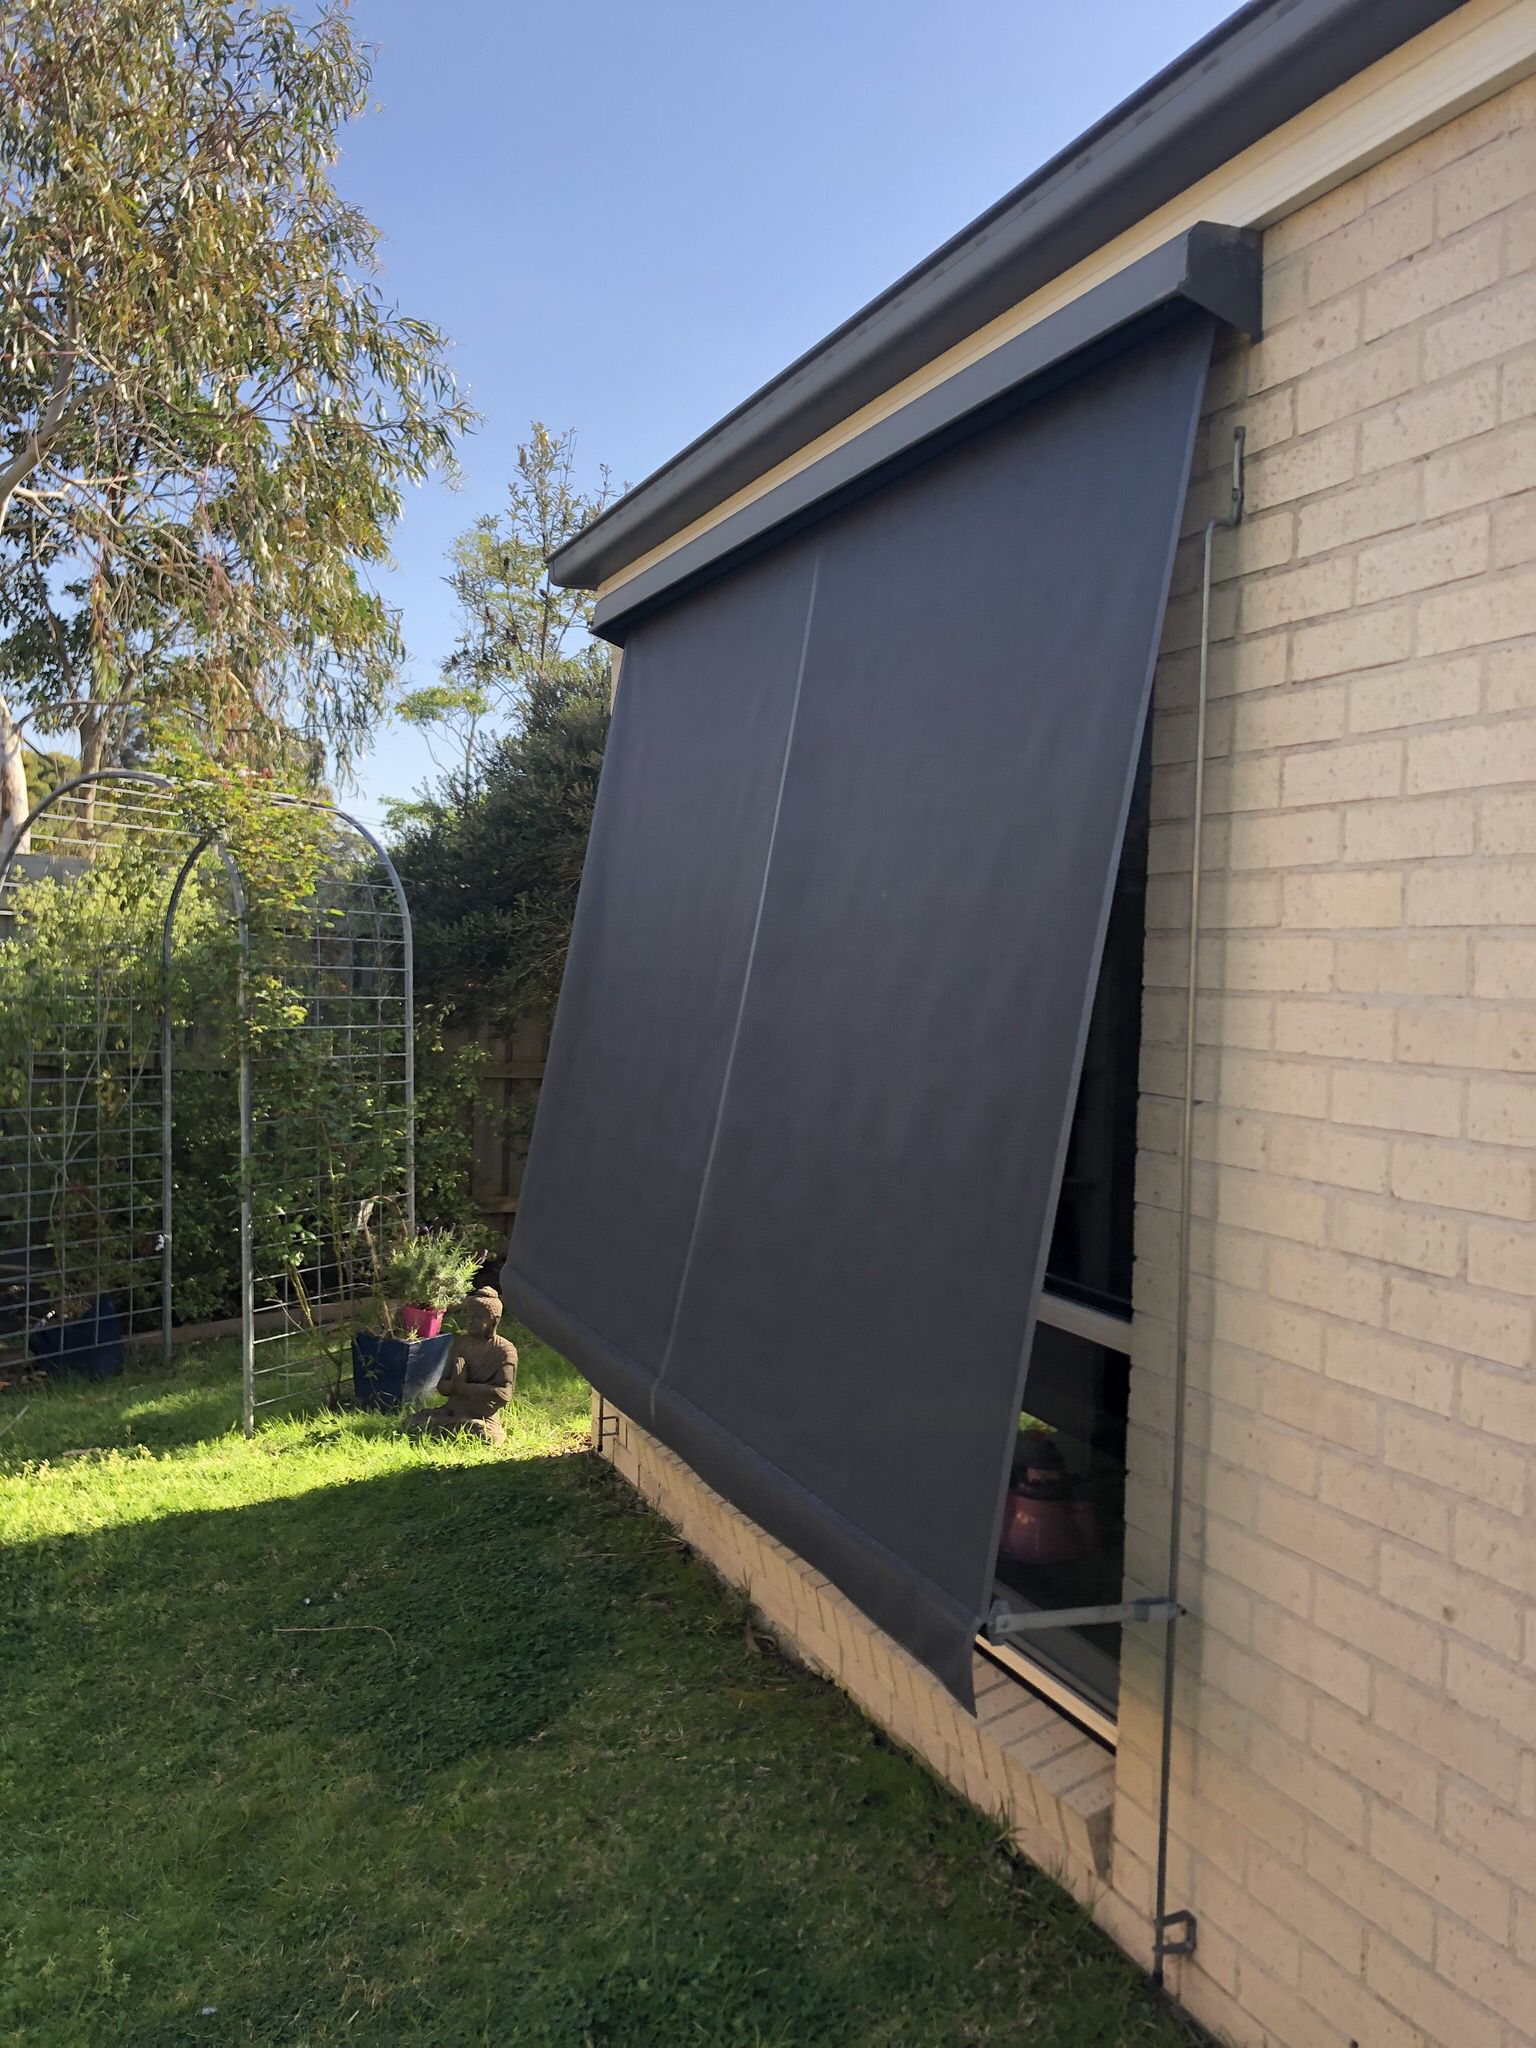 10 Years On And These Mesh Fabric Outdoor Sun Blinds Are Still Looking Great And Doing Well Protecting From The Western Outdoor Blinds Melbourne House Blinds